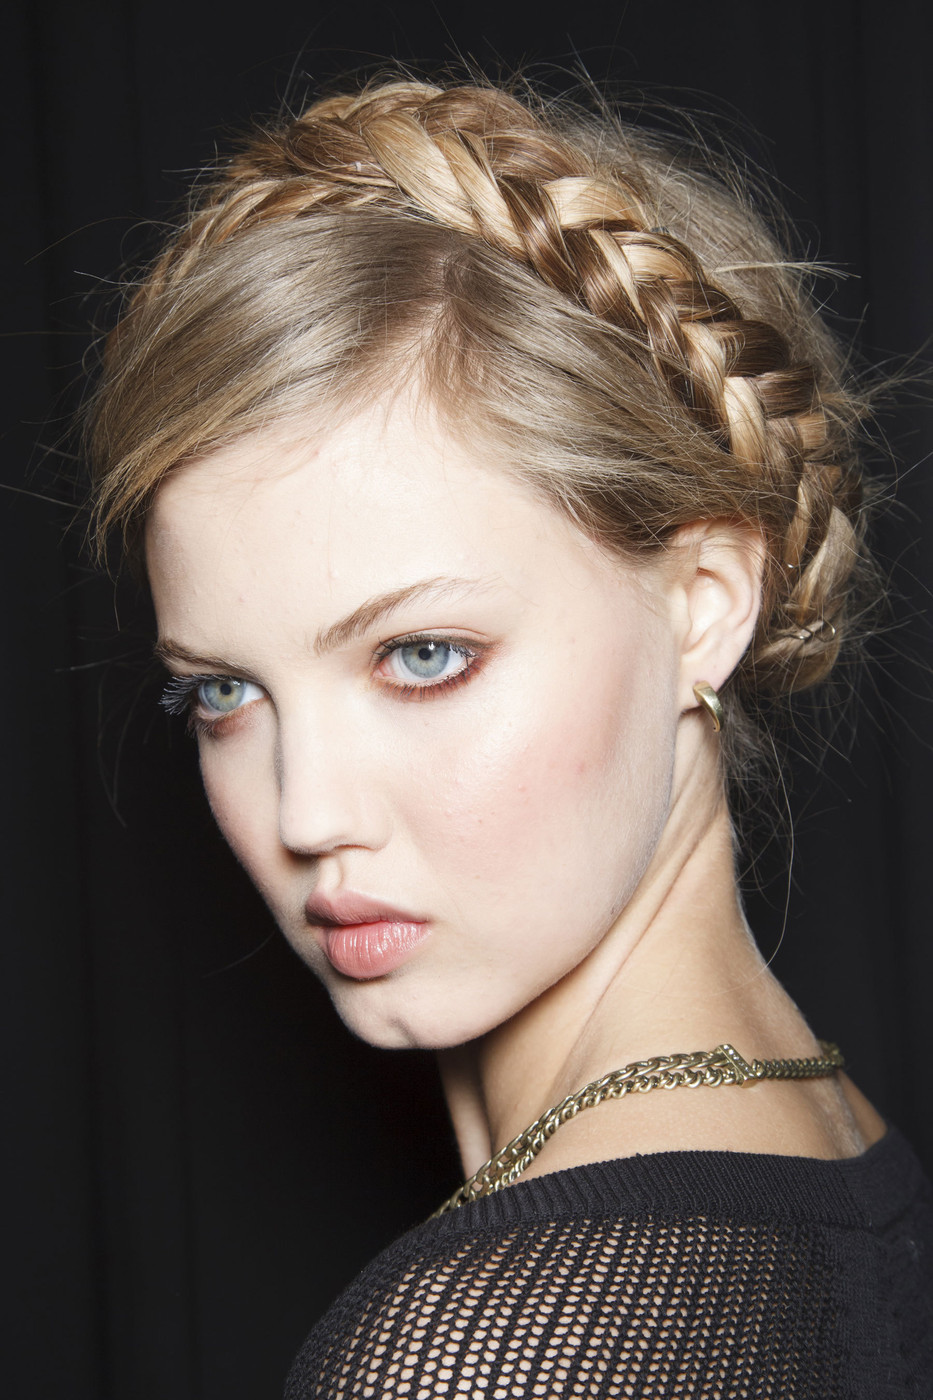 Milkmaid Braids Aren't Just For Little Girls Anymore